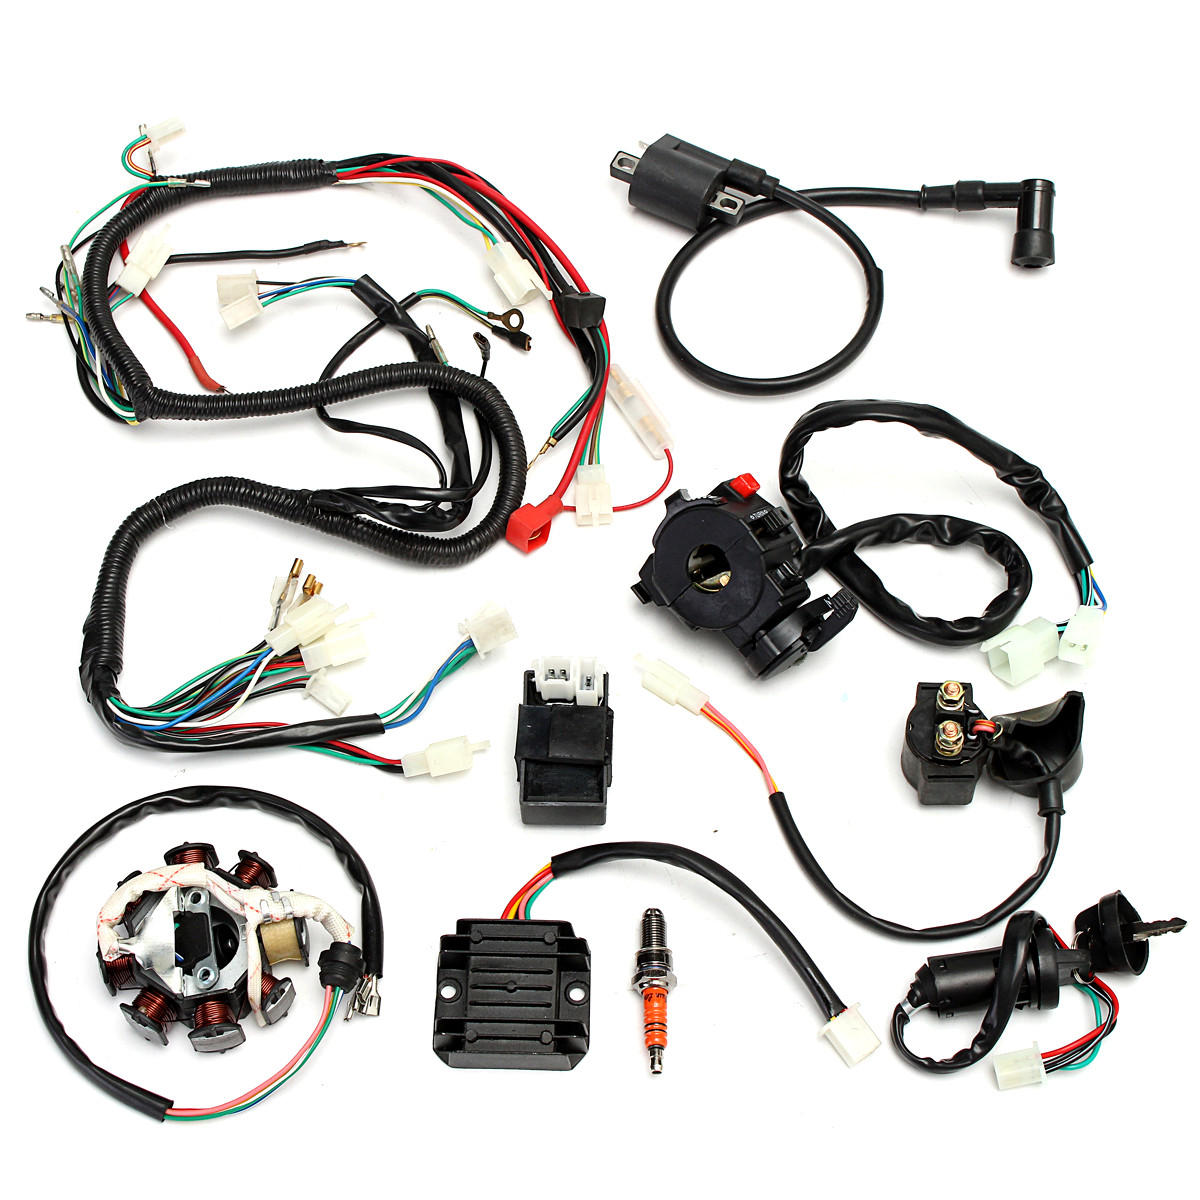 hight resolution of complete electrics wiring harness for chinese dirt bike atv quad 150 250 300cc chinese 125cc wiring harness chinese wiring harness